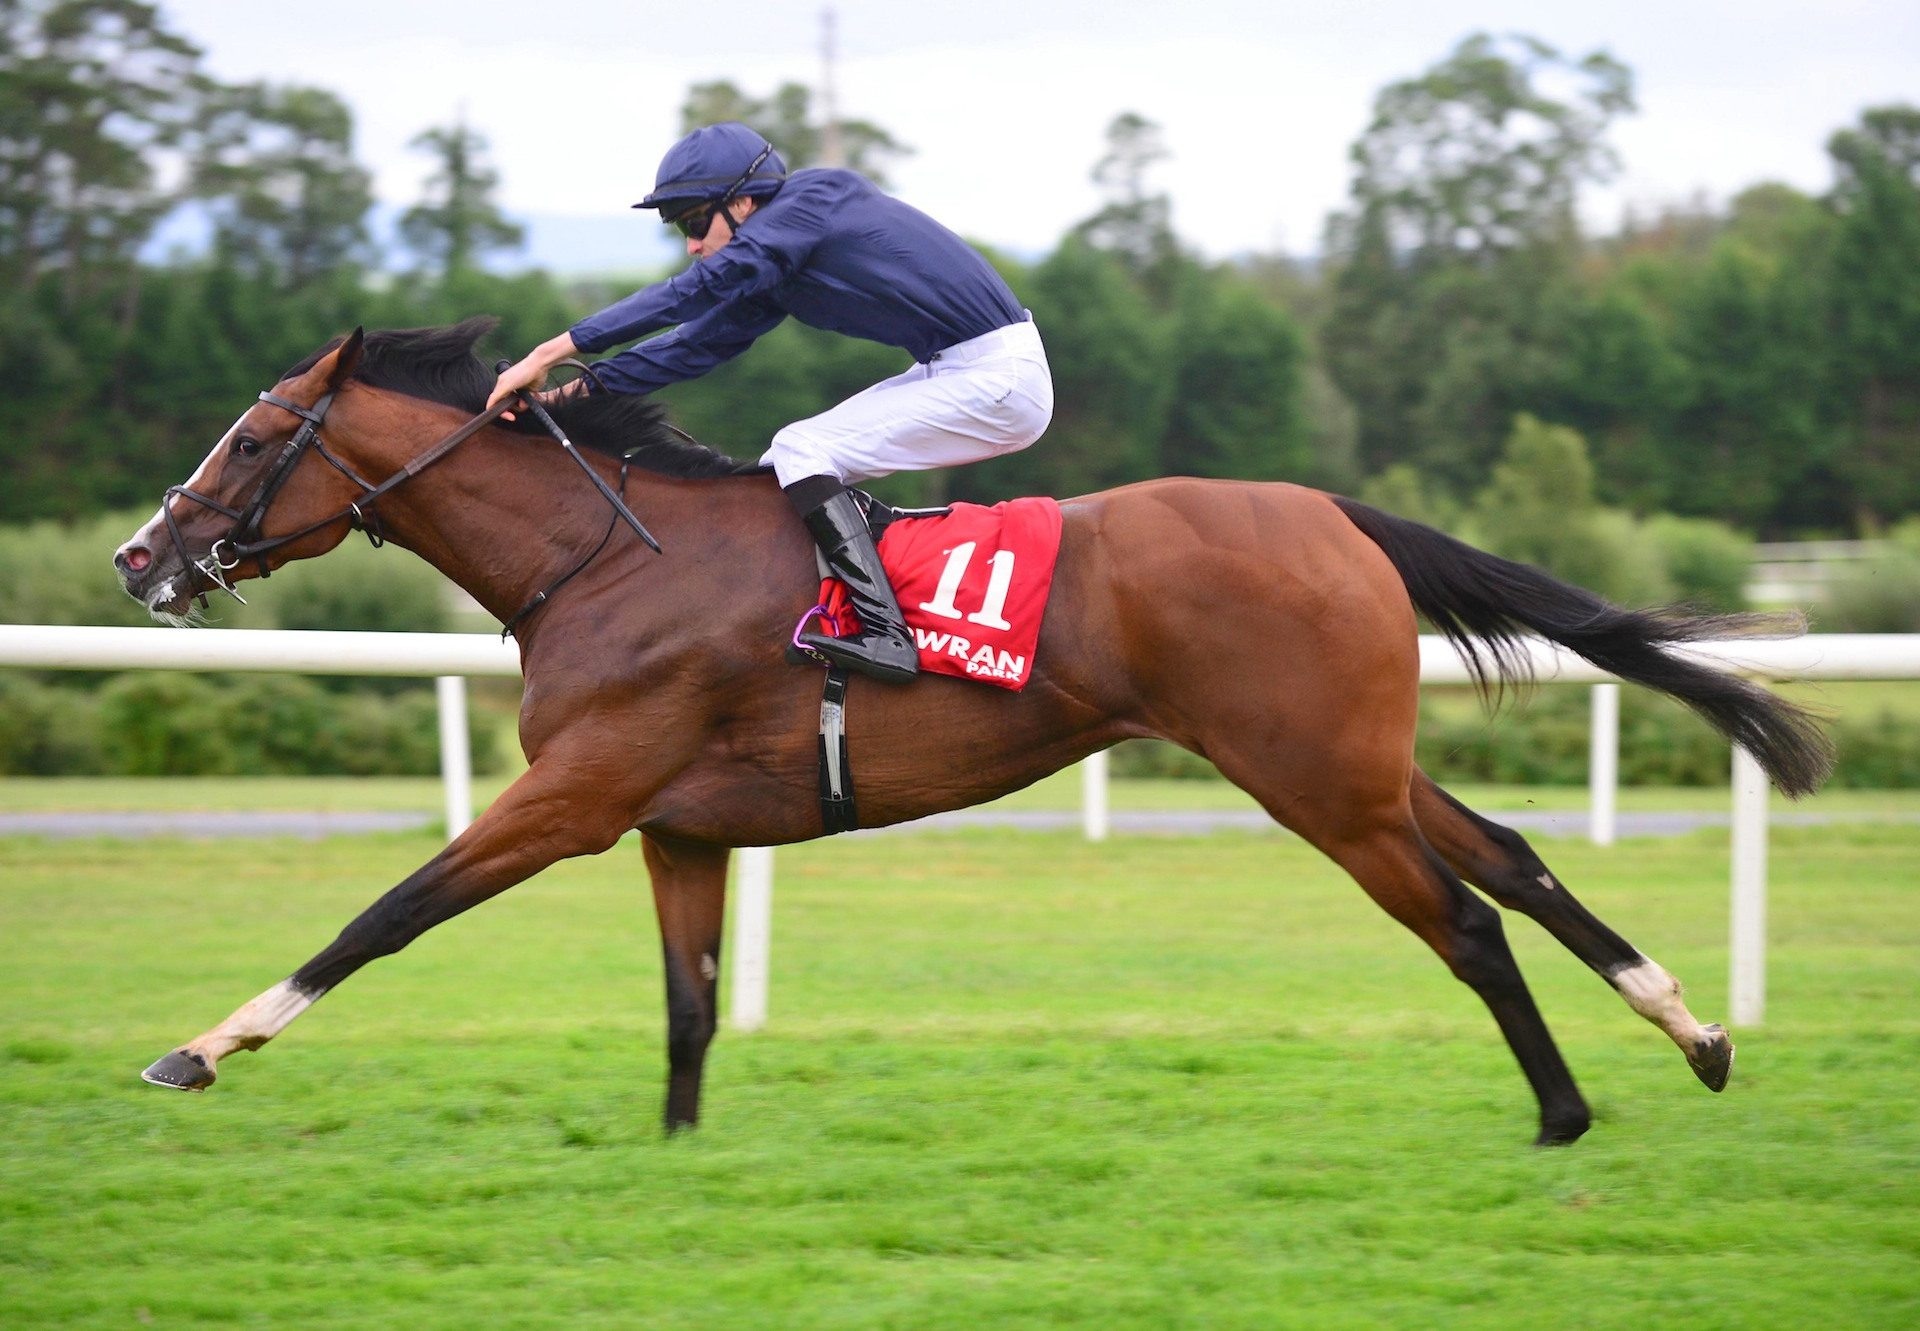 Goddess (Camelot) winning the Listed Hurry Harriet Stakes at Gowran Park